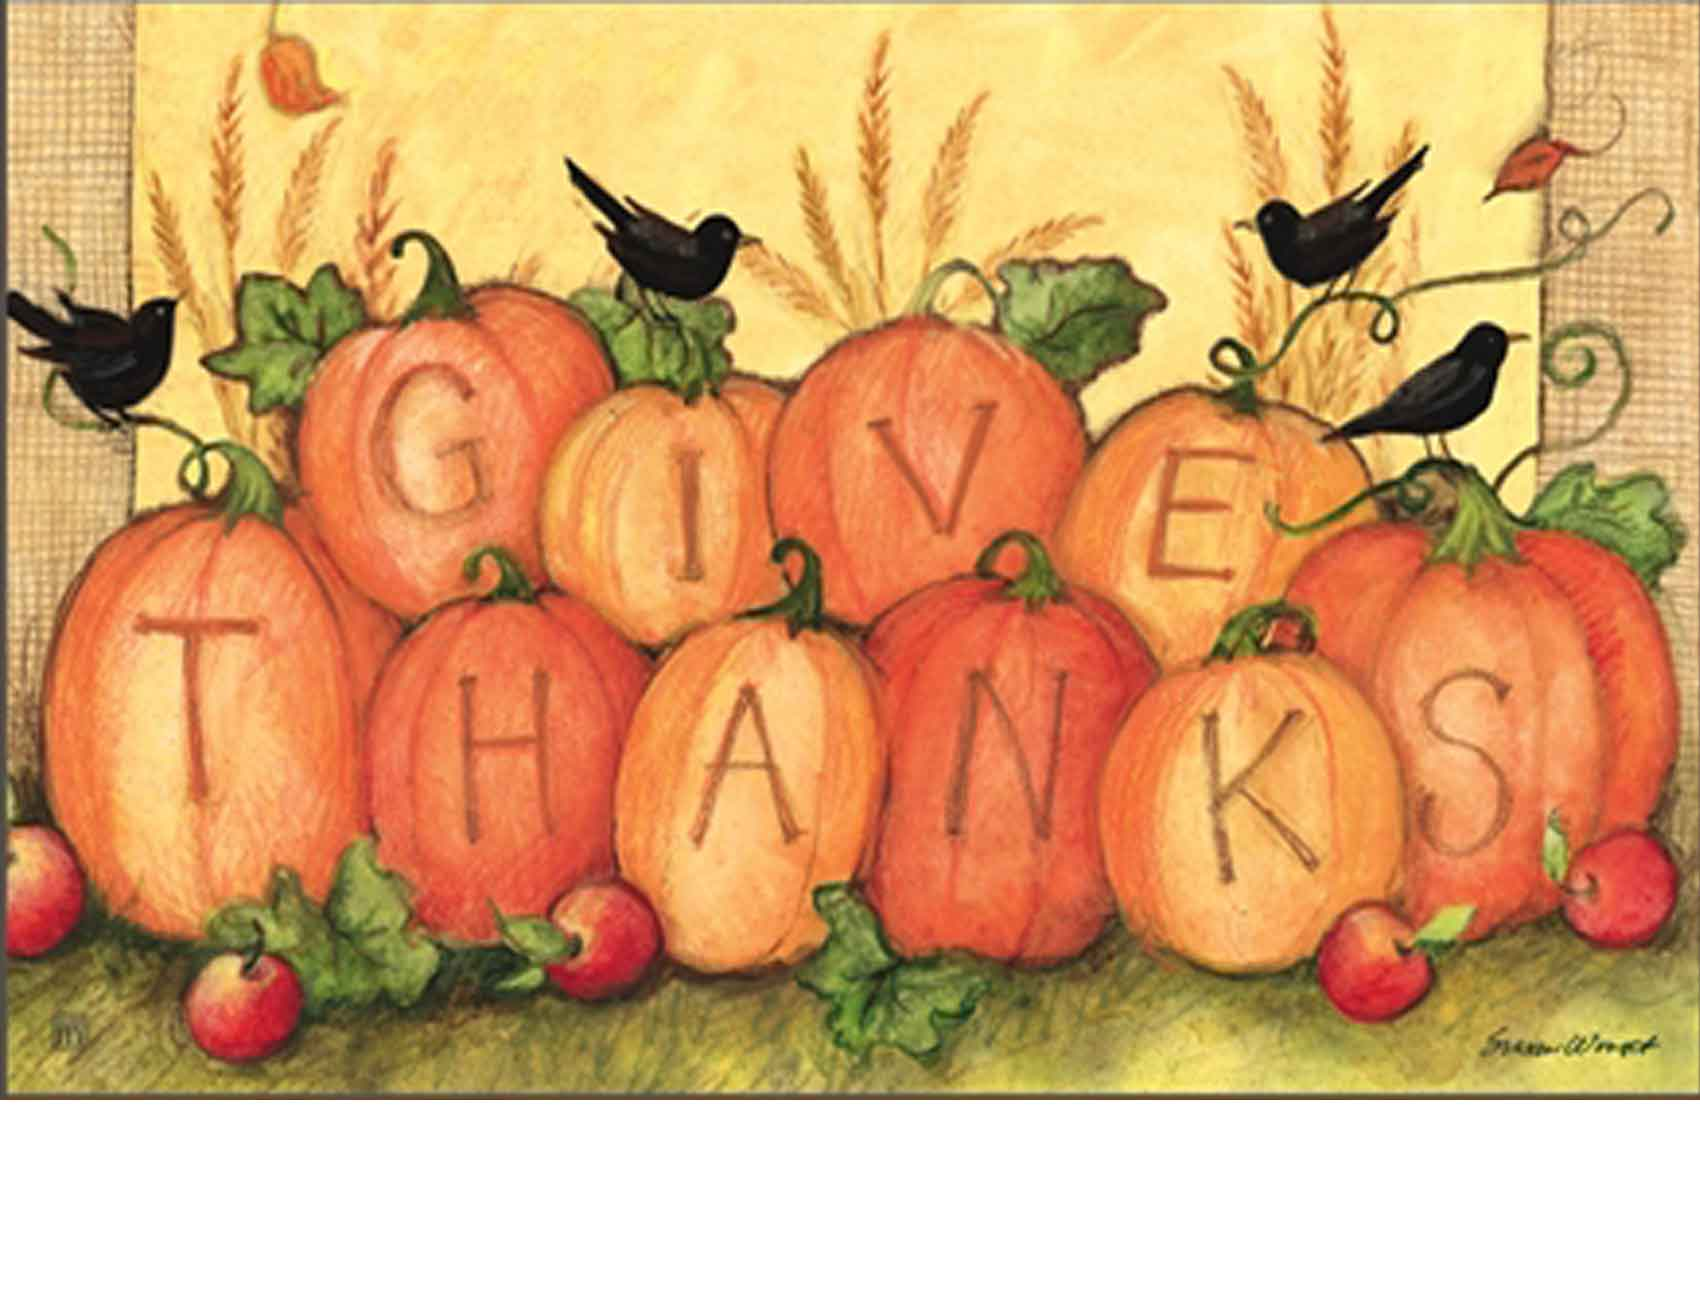 Indoor & Outdoor Give Thanks Scarecrow MatMates Doormat (Doormat or Flag: Doormat)